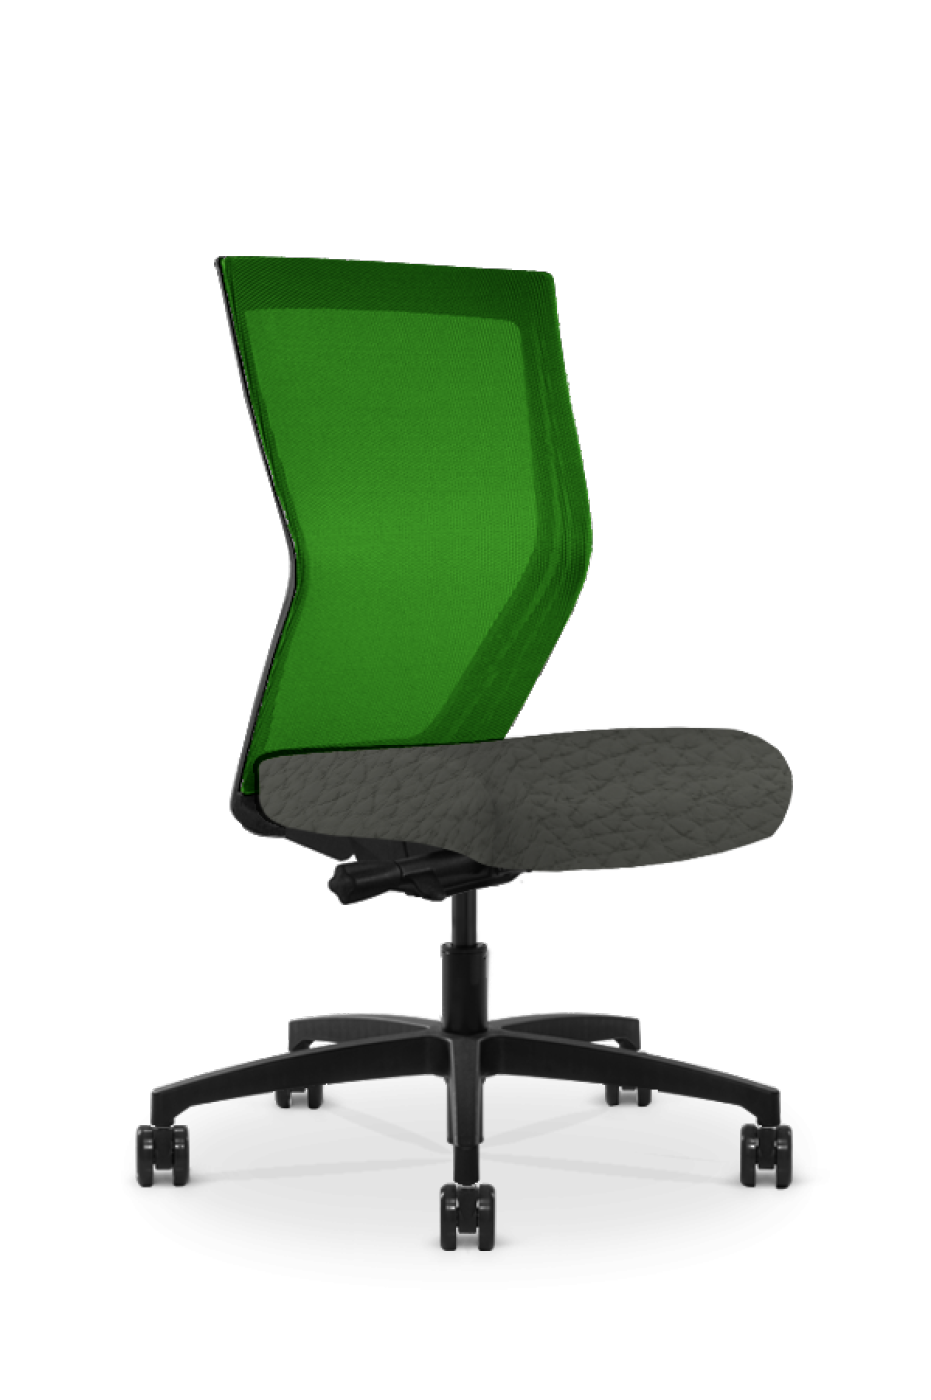 Quarter view of a Run II high-back chair, with a green mesh back and dark grey seat cushion.